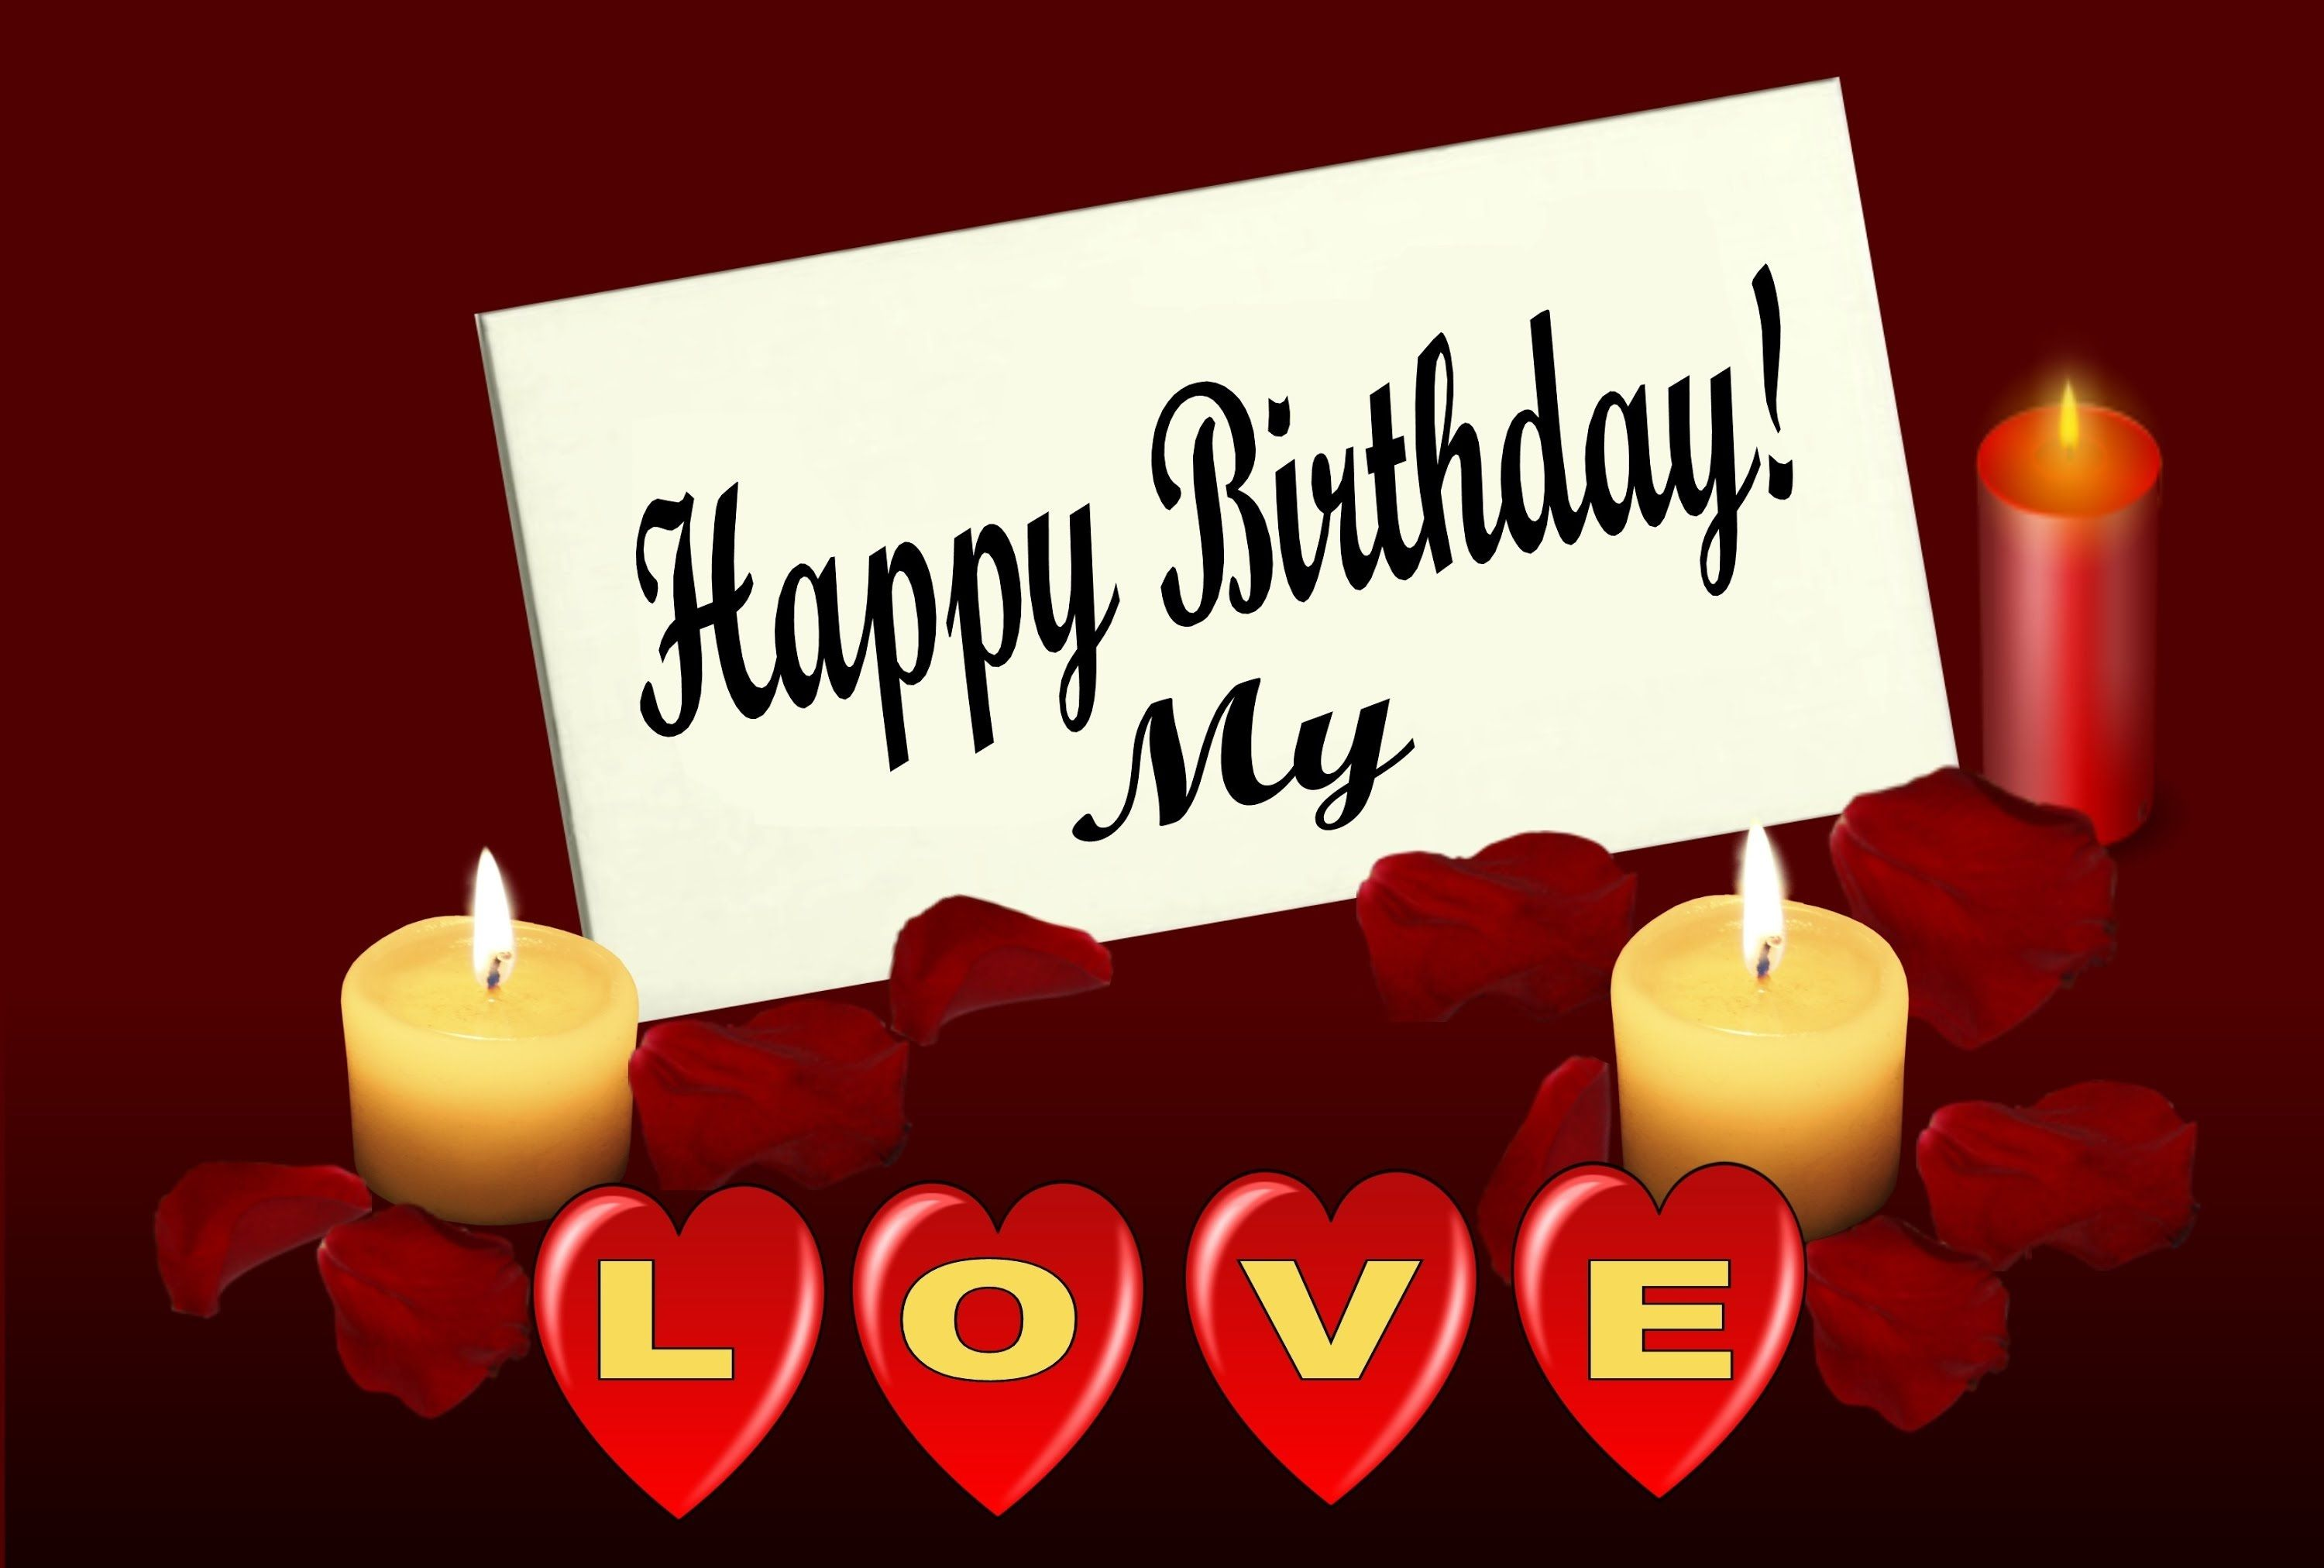 Happy birthday my love birthday cards and wishes birthdays happy birthday my love birthday cards and wishes m4hsunfo